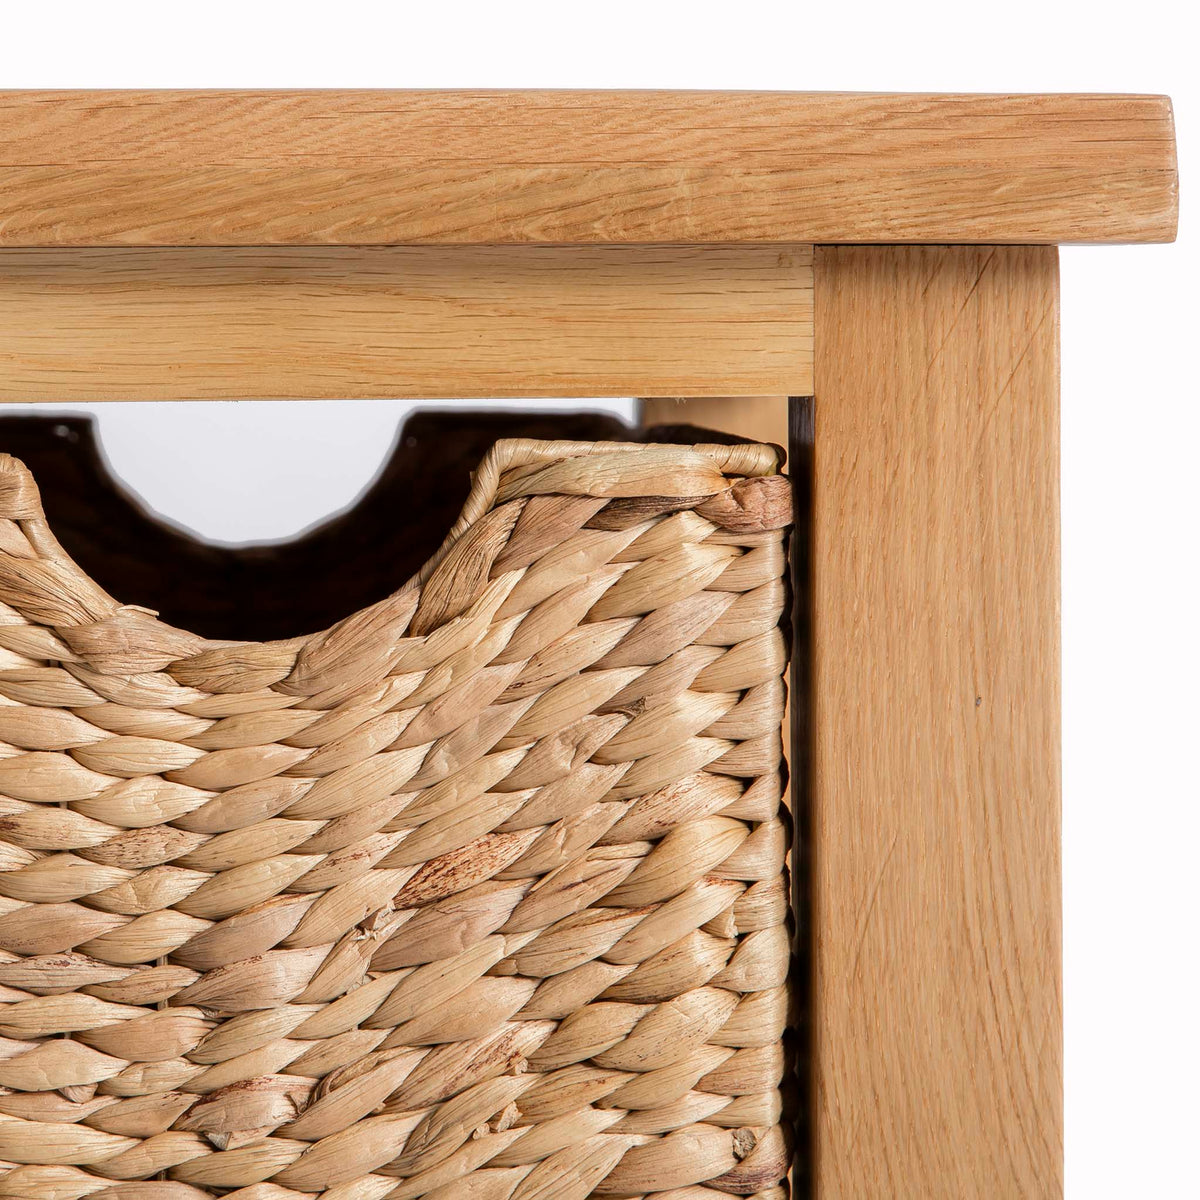 London Oak Coffee Table with Baskets by Roseland Furniture - Front close up of basket